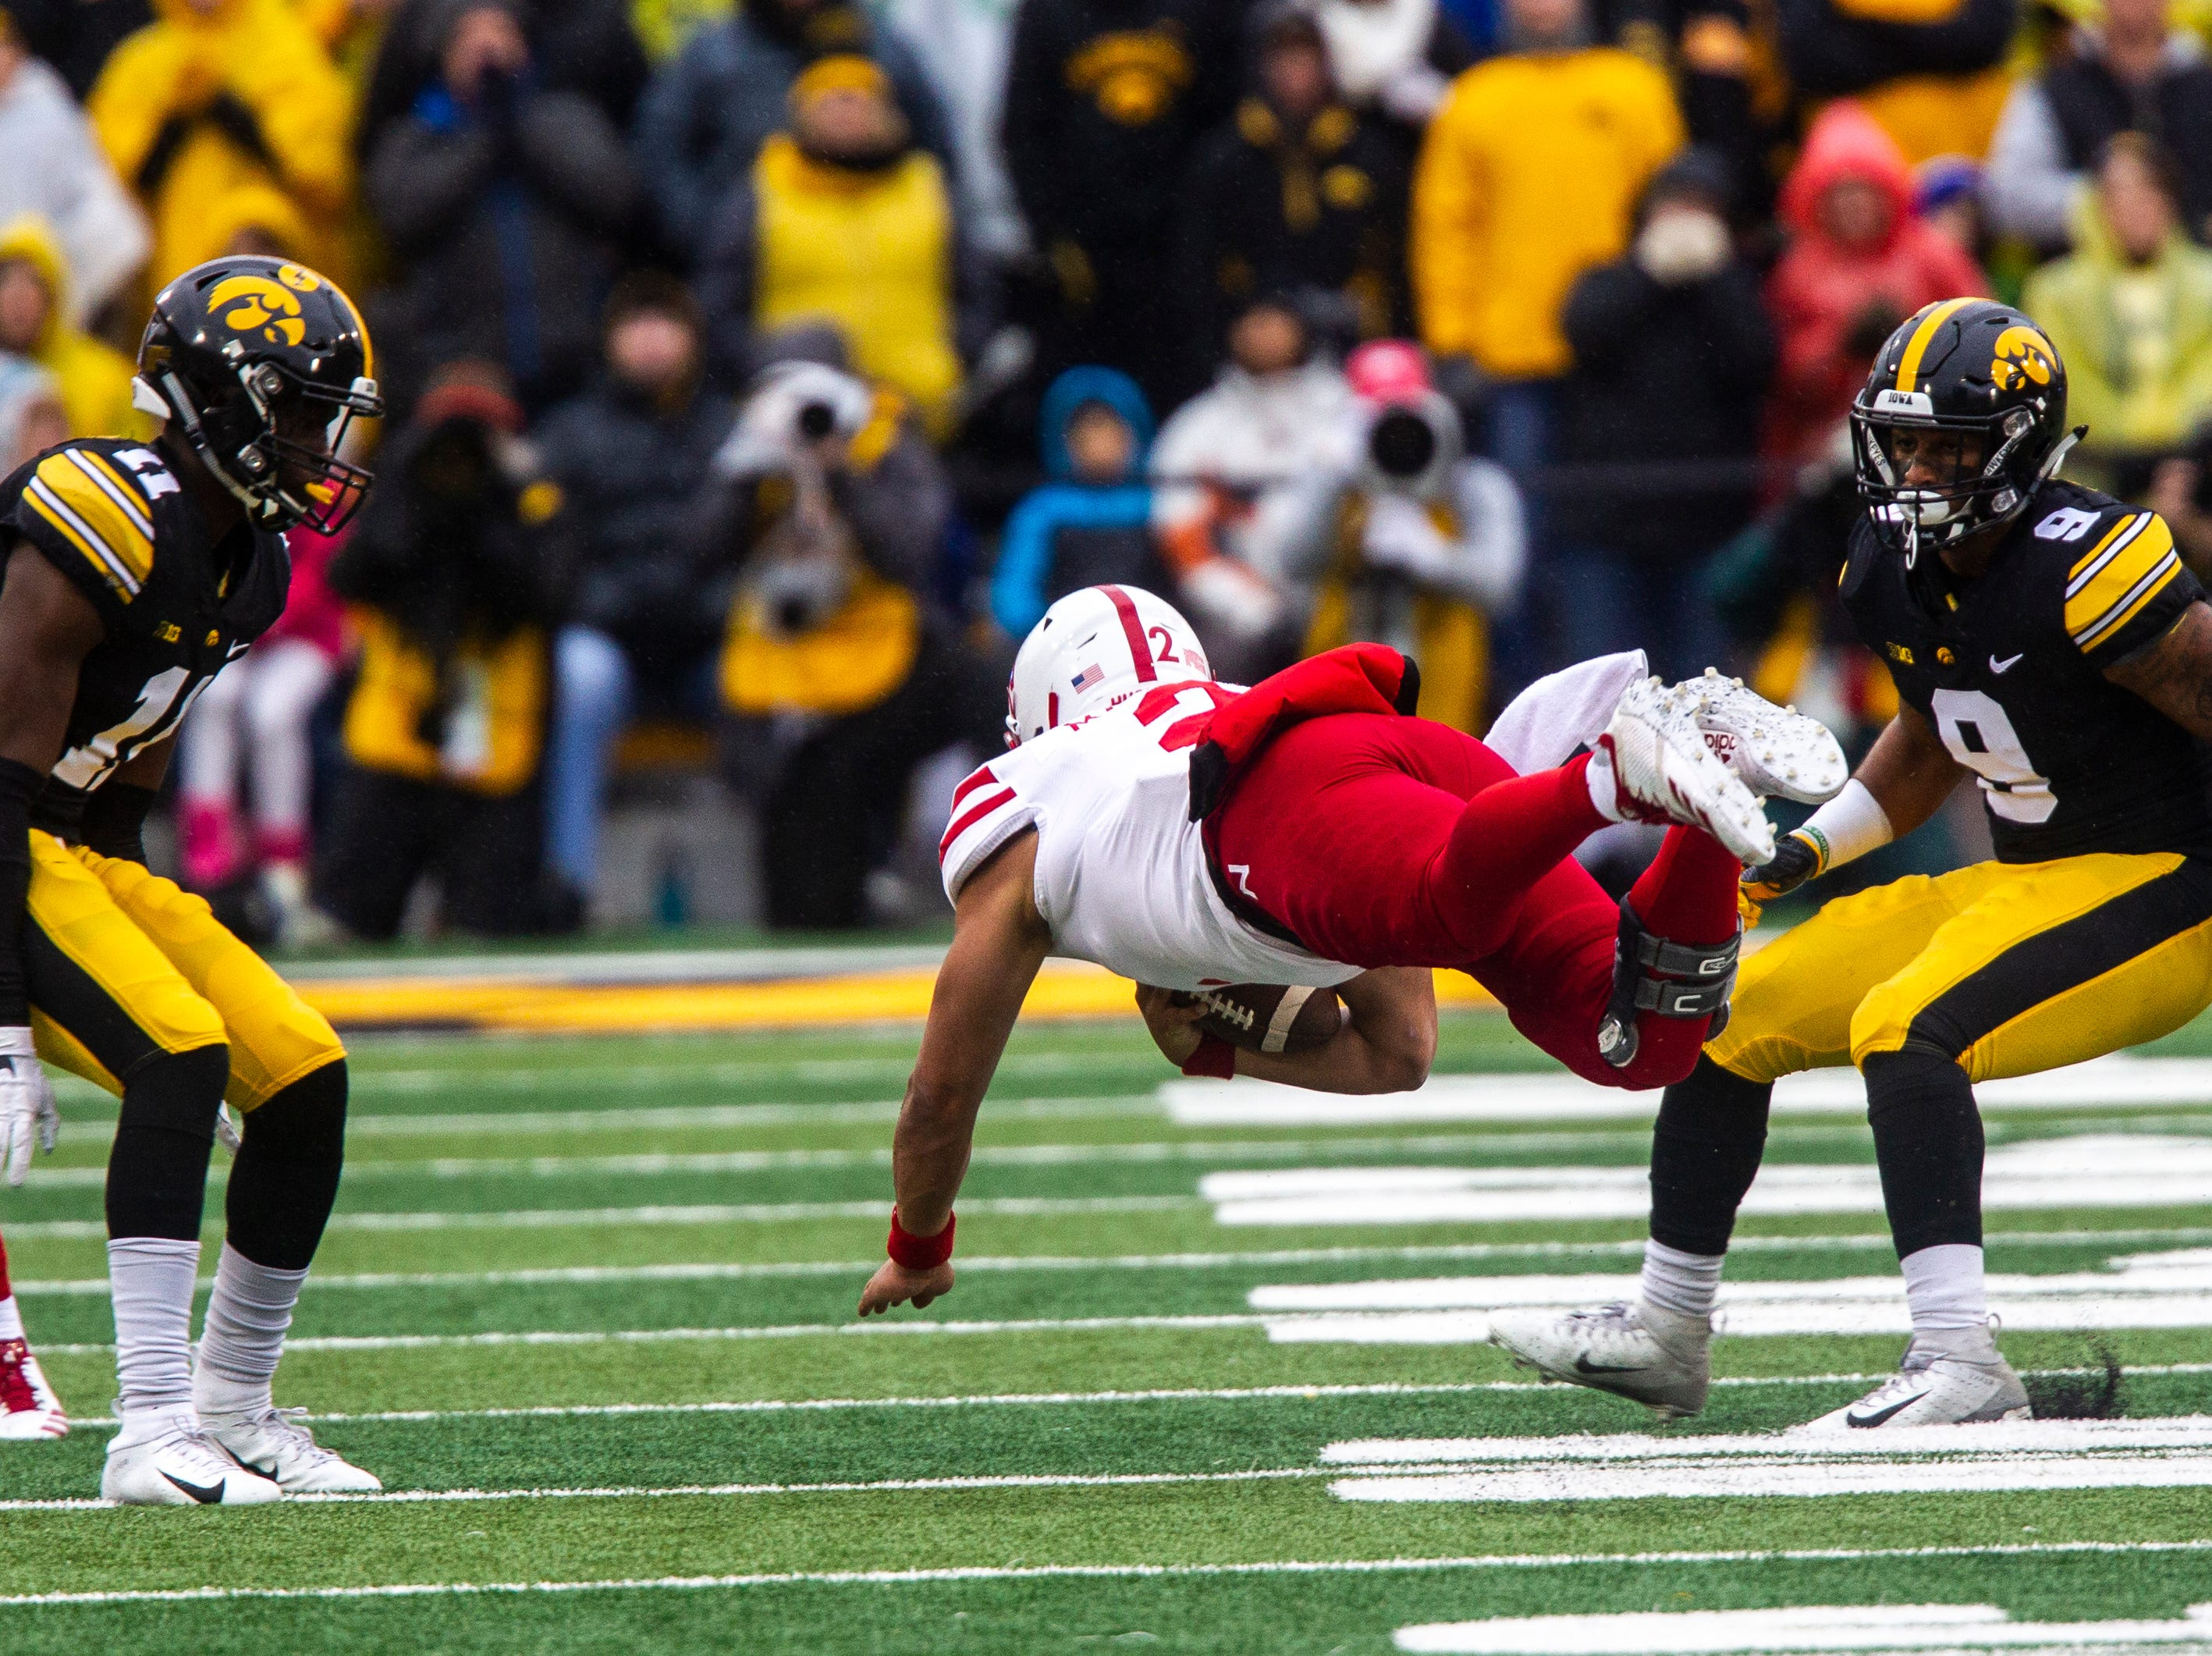 Nebraska quarterback Adrian Martinez (2) dives to avoid tackles from Iowa defensive back Michael Ojemudia (left) and Iowa defensive back Geno Stone (right) during a Big Ten Conference NCAA football game on Friday, Nov. 23, 2018, at Kinnick Stadium in Iowa City.